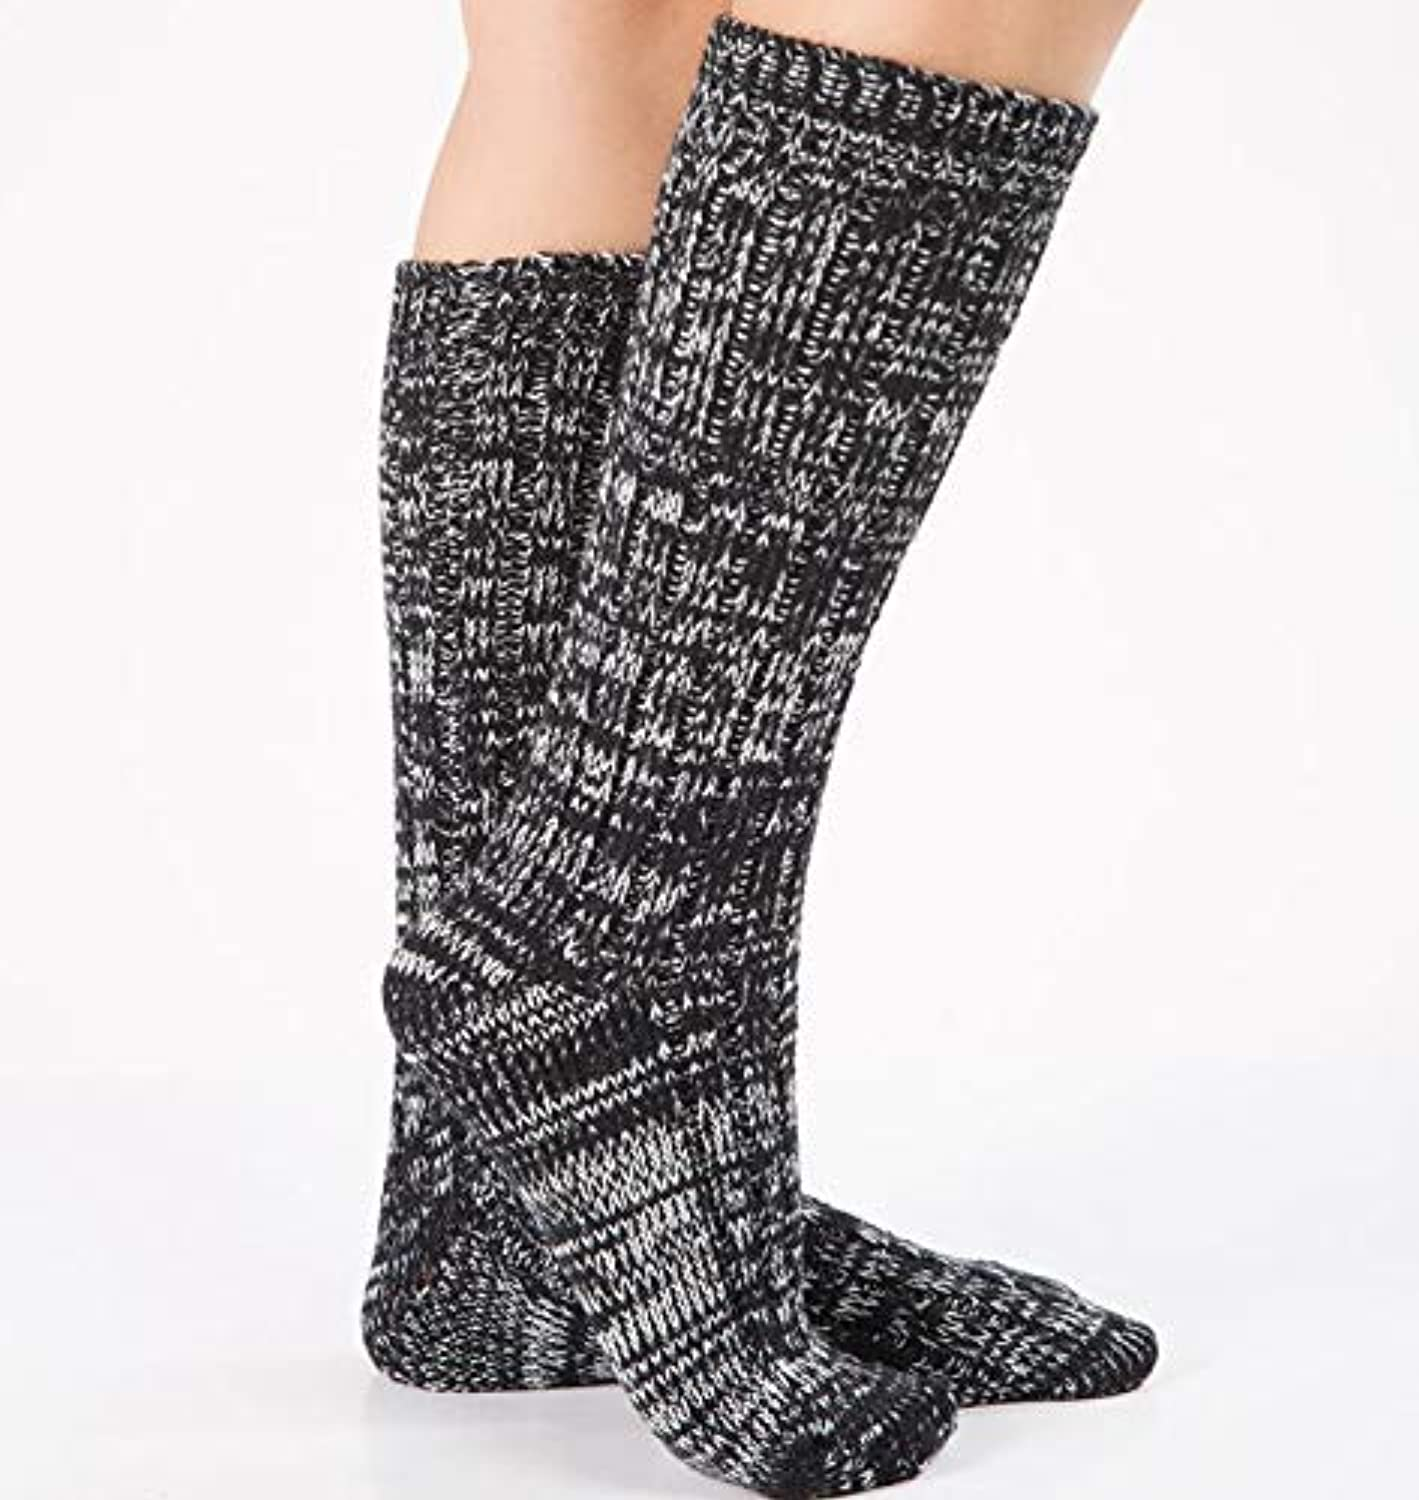 Comfortable Arm Warmer Leg Stocking Christmas Thick Wool Floor Socks Home Socks Knit Warm Mixed color Strips in The Paragraph Foot Socks (color   Black)